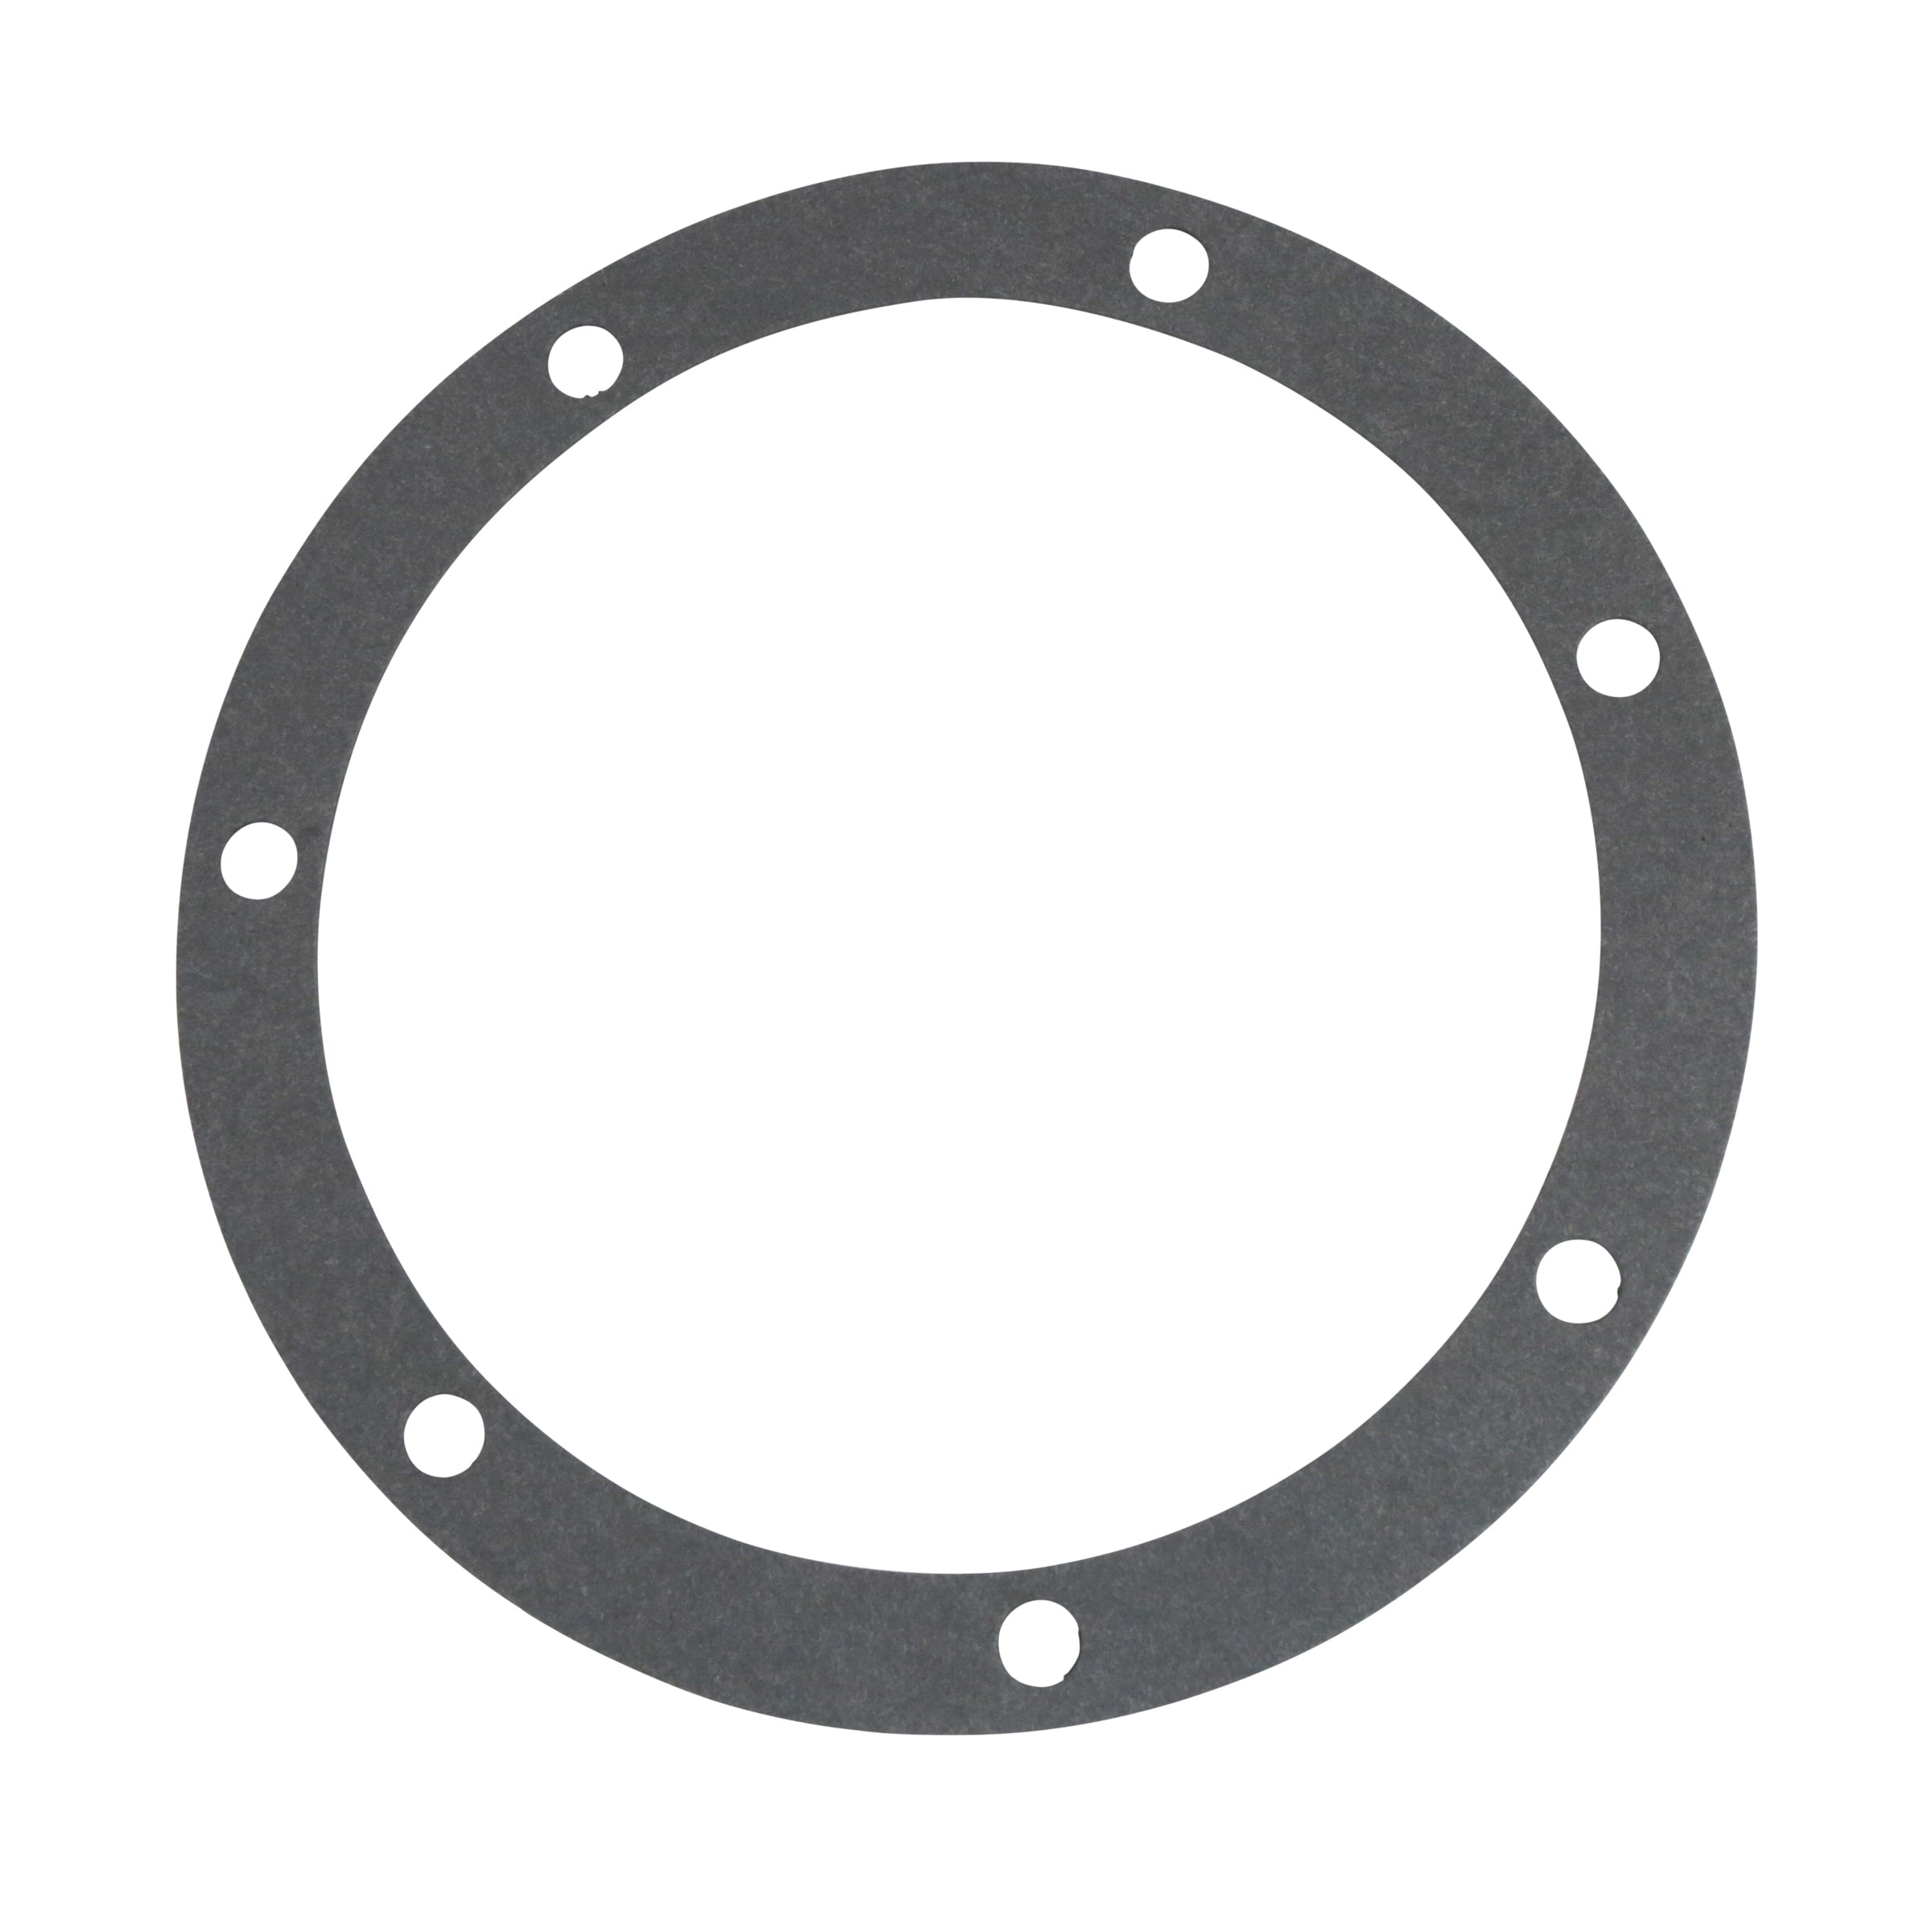 Oil Pan Plate Clean-Out Gasket • 1948-52 Ford Passenger & Truck V-8 & 6 Cylinder